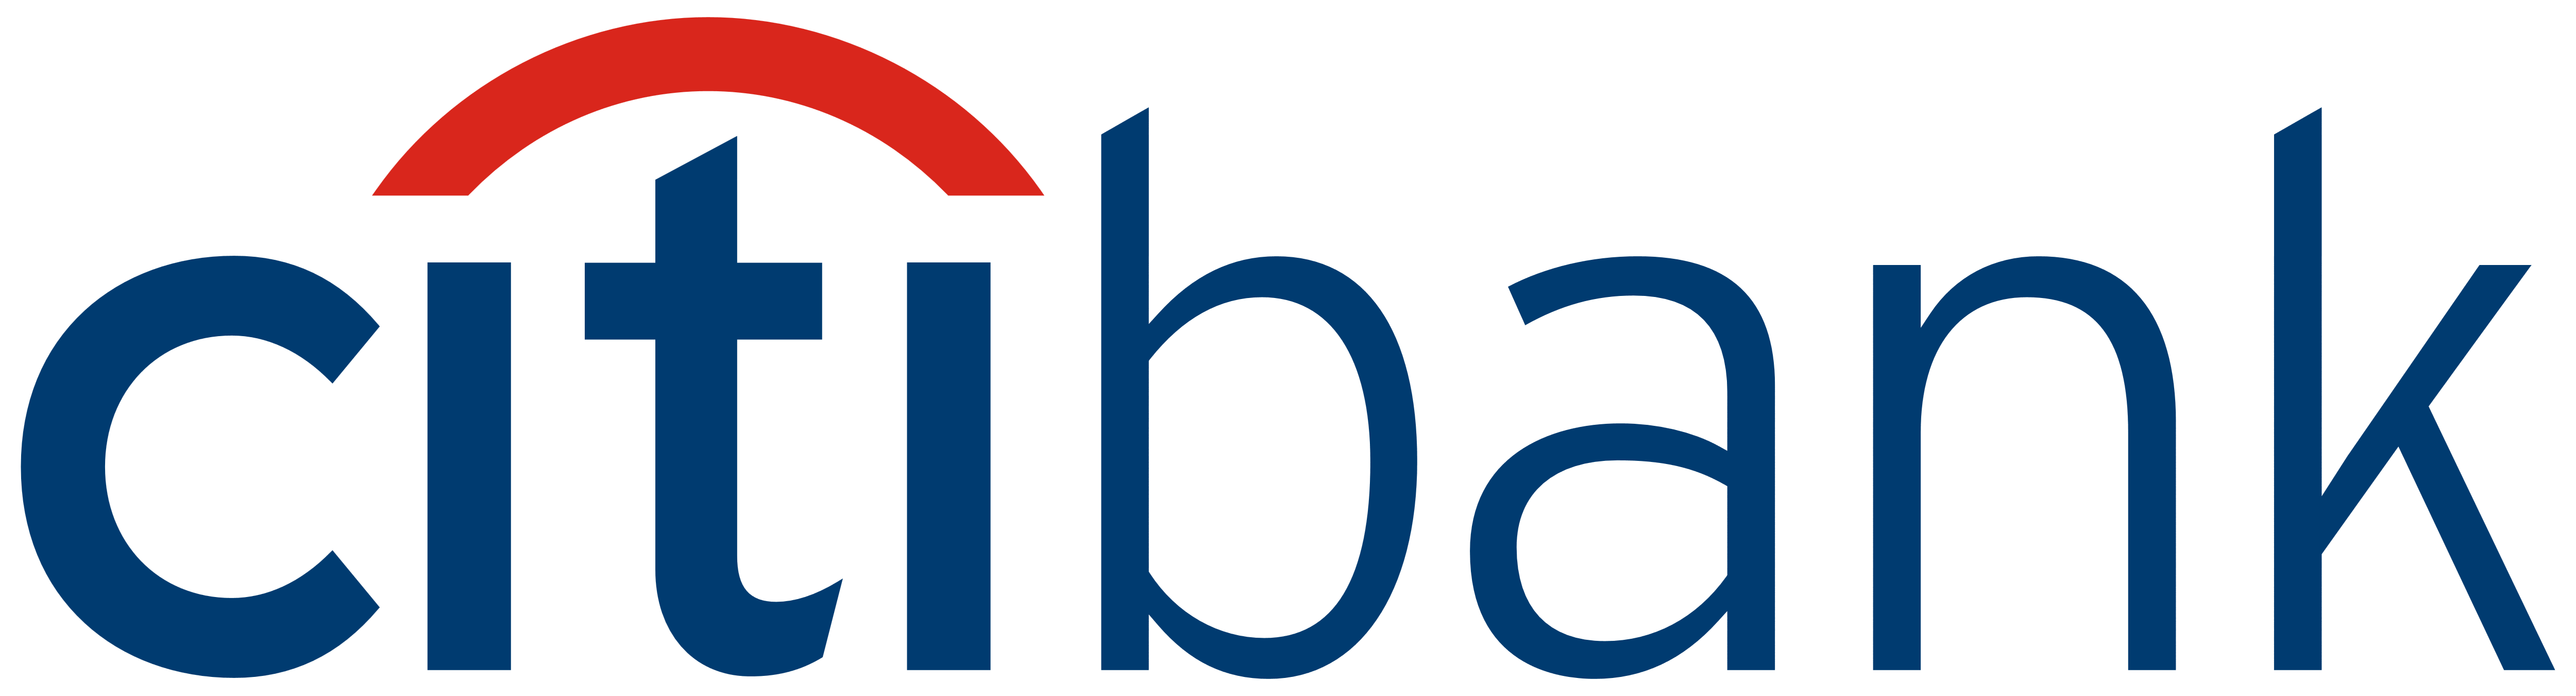 Citibank, Citi – Logos Download